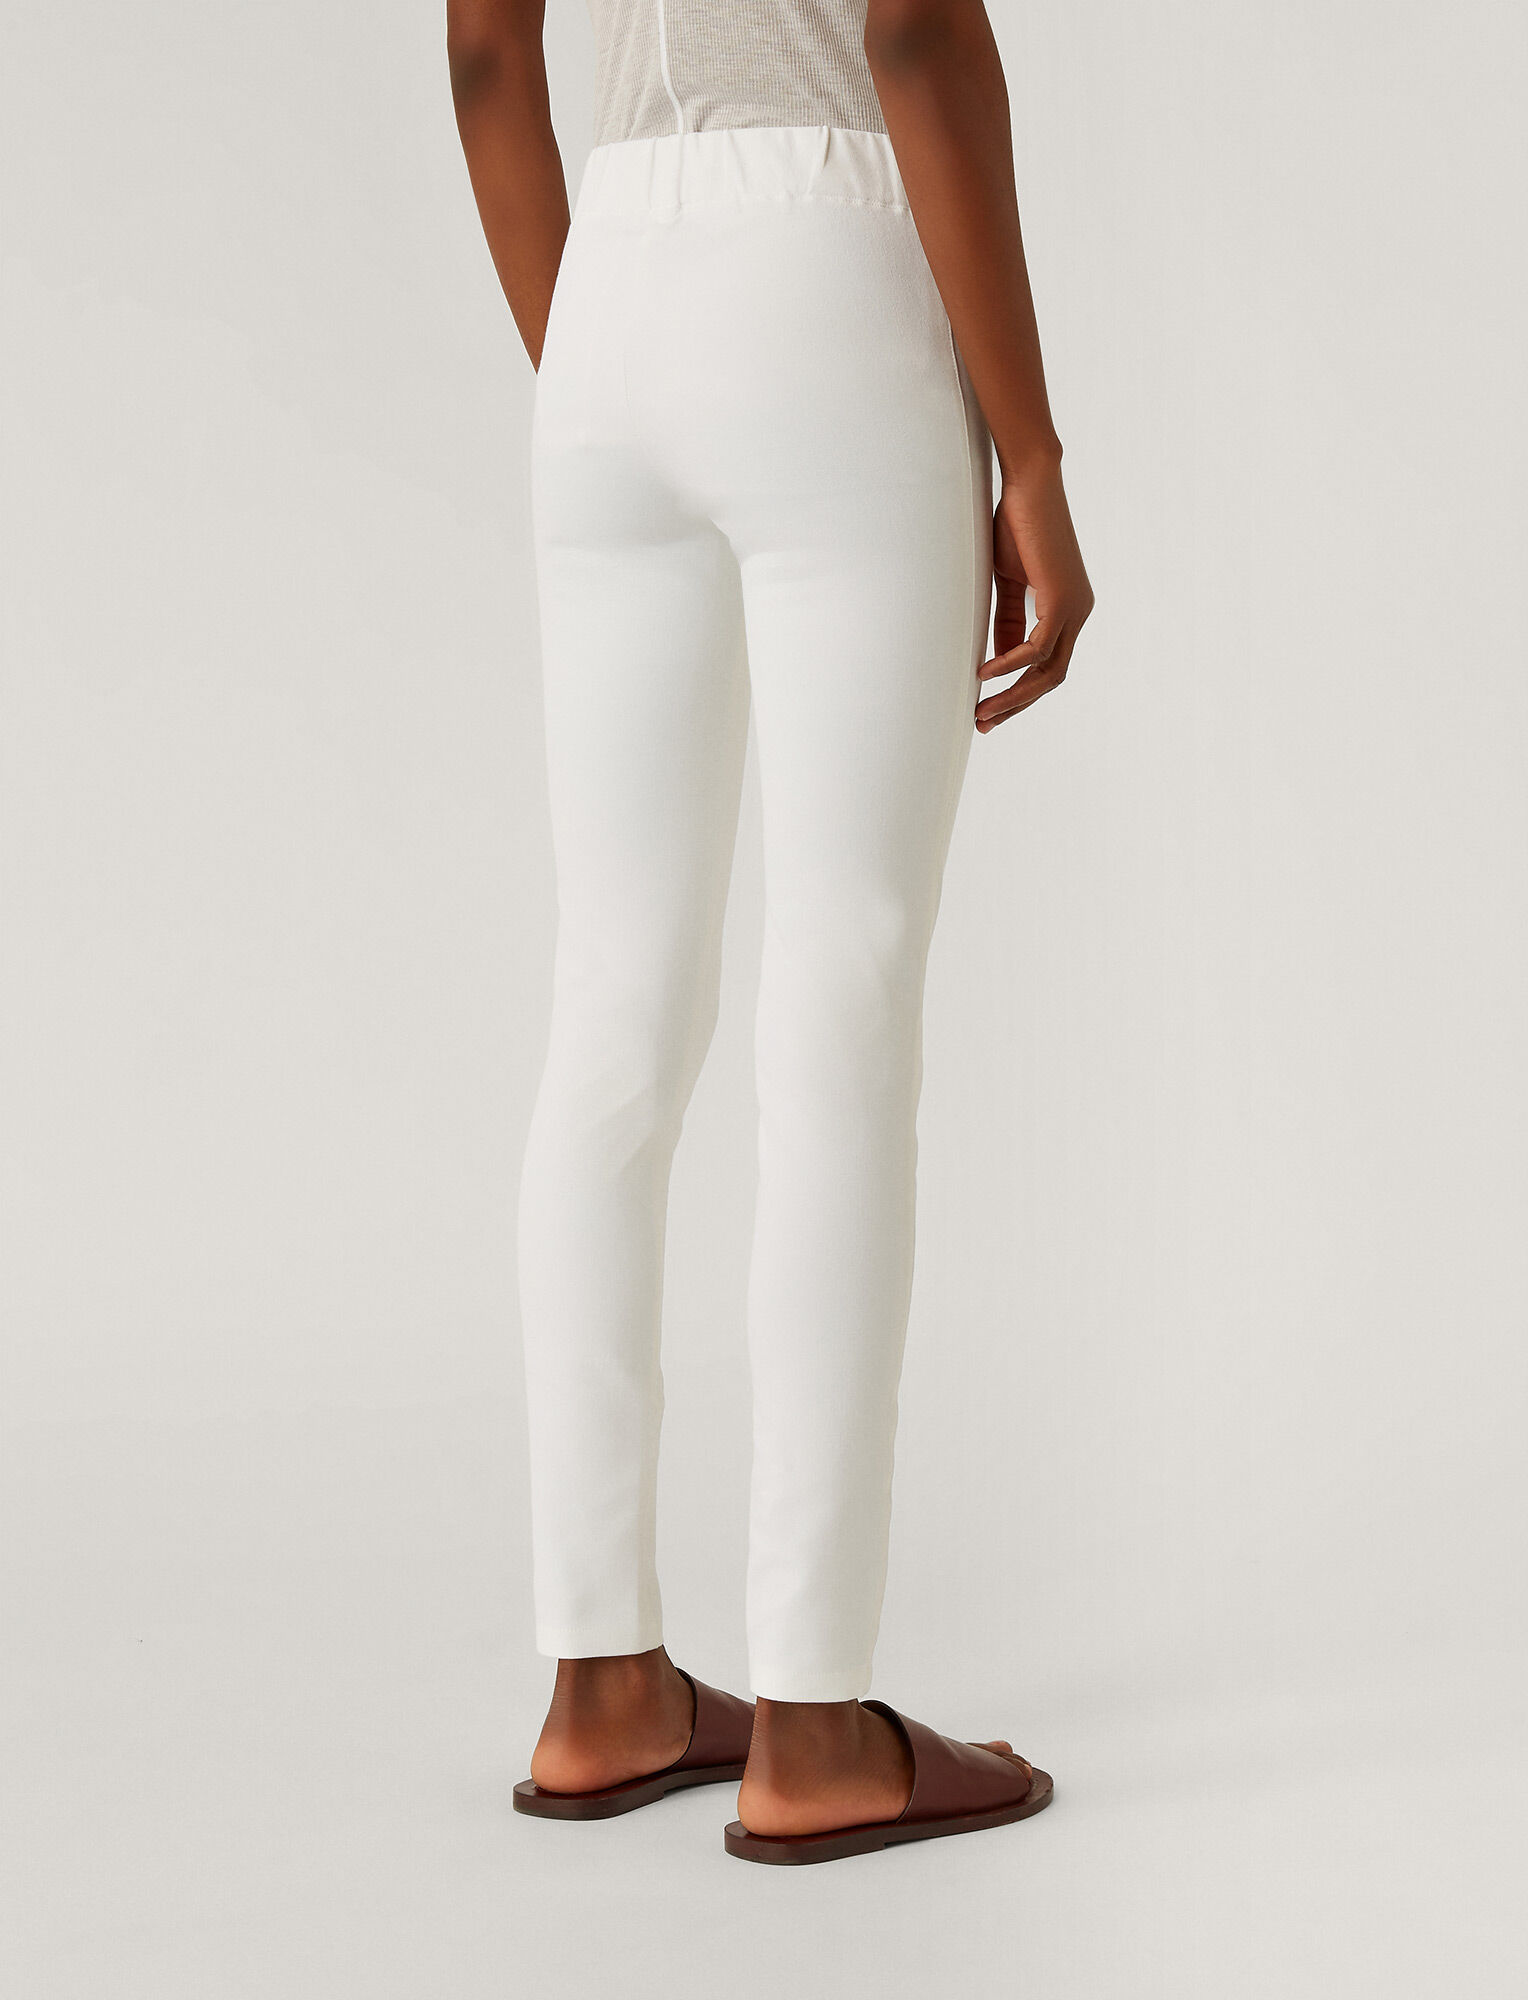 Joseph, Gabardine Stretch Legging, in WHITE